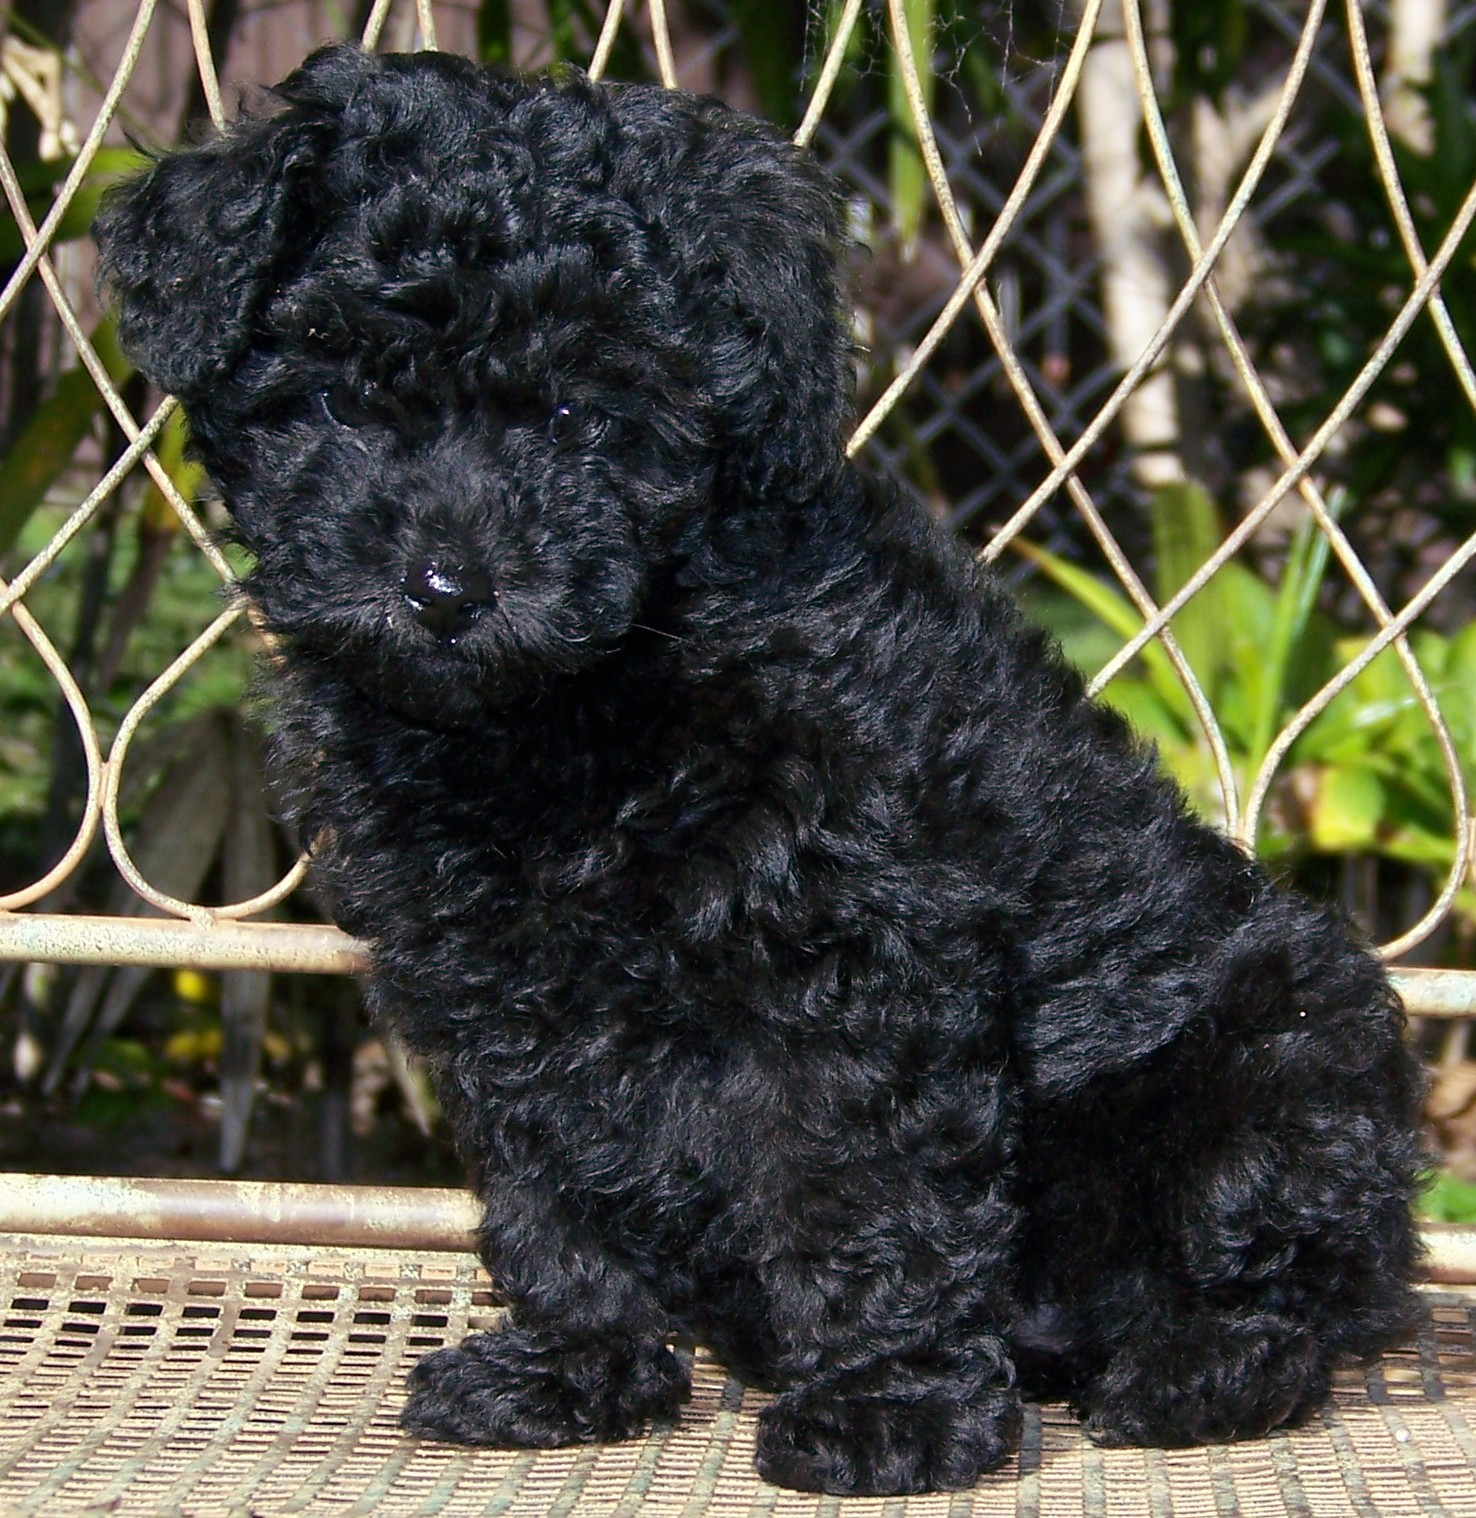 Black Poodle photo and wallpaper. Beautiful Black Poodle pictures